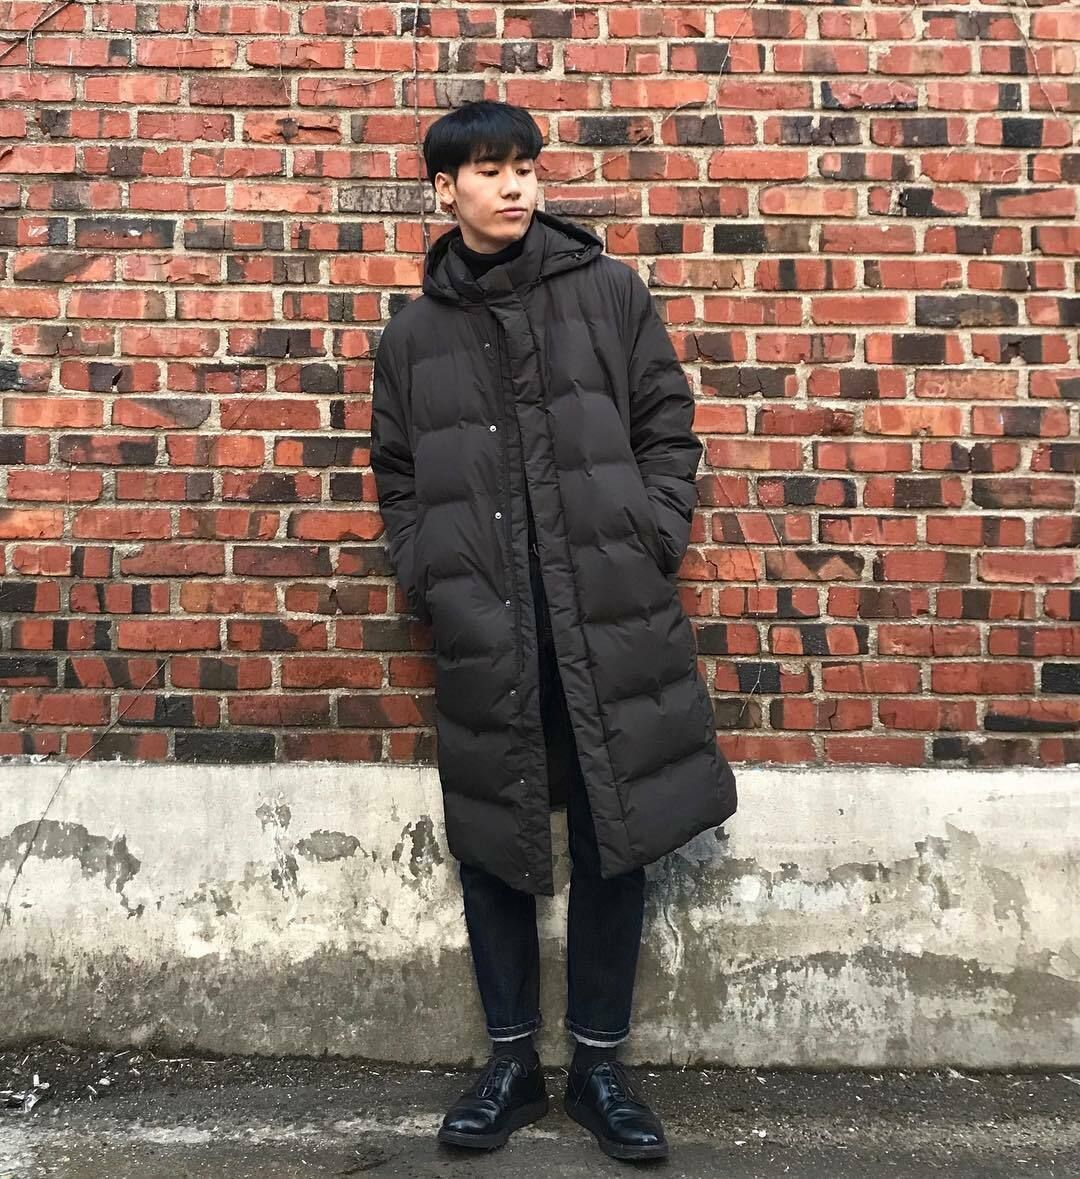 Uniqlo Men Seamless Down Long Coat Water Repellent Hooded Puffer Jacket S M 179 99 Uniqlo Men Mens Puffer Coat Puffer Jacket Black [ 1179 x 1080 Pixel ]